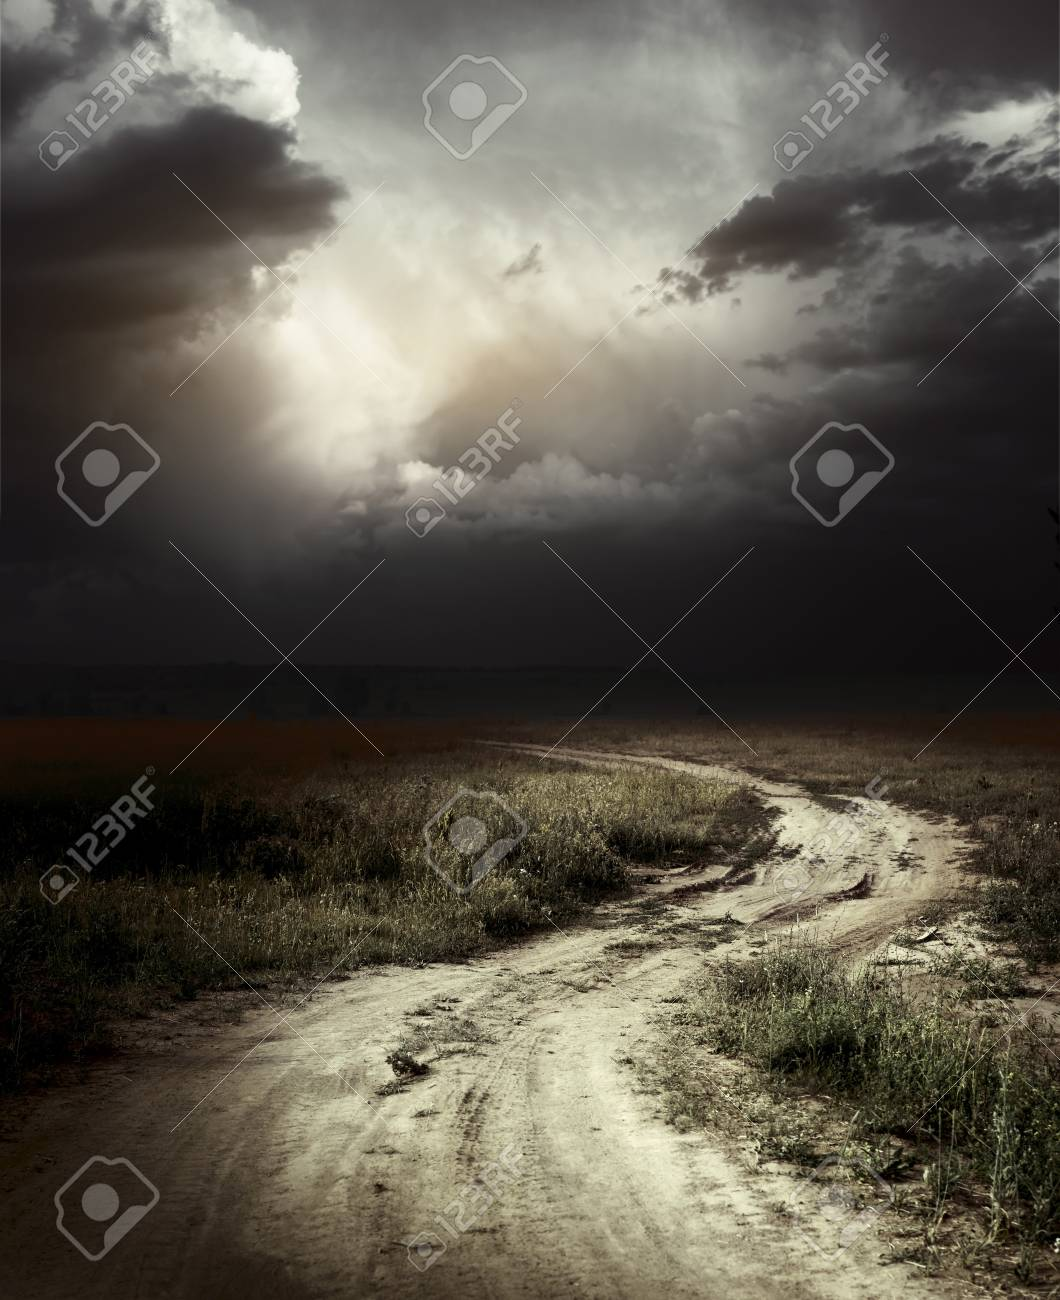 Rural road and dark storm clouds Stock Photo - 7470133